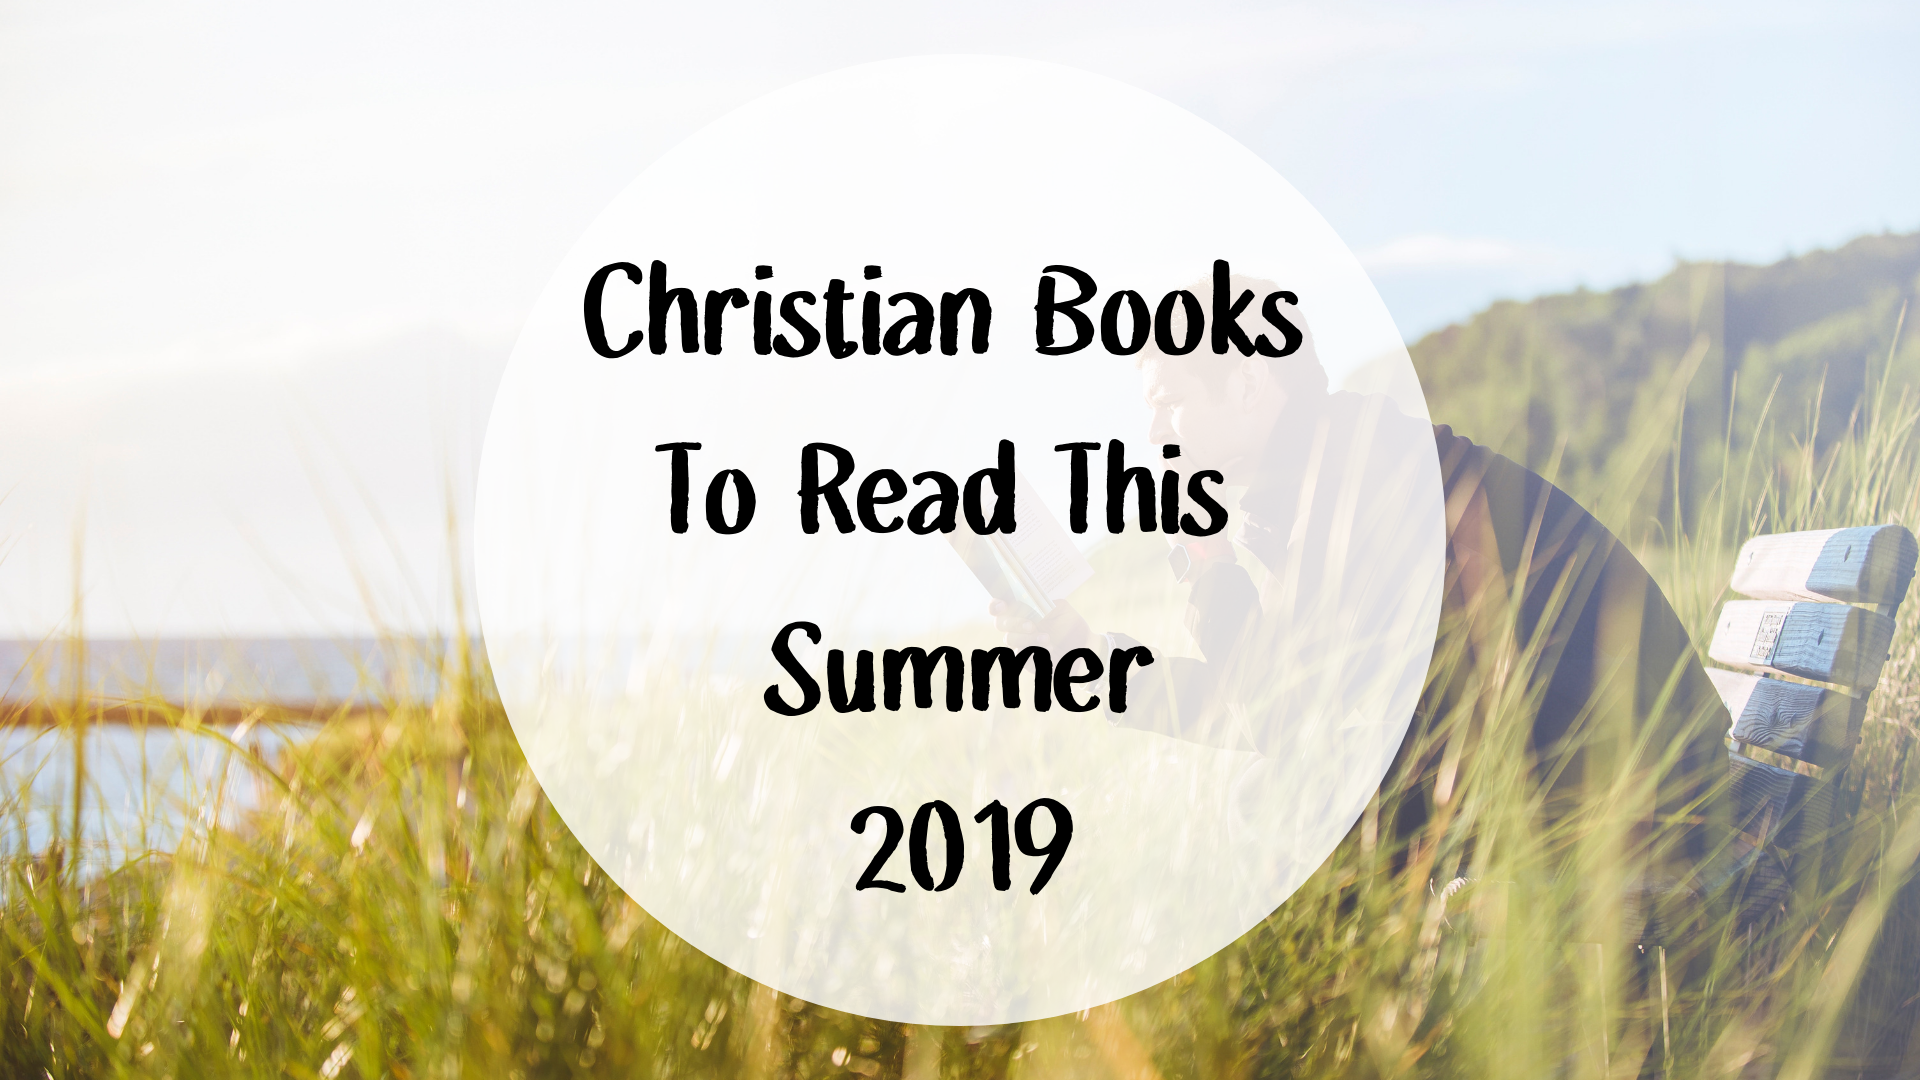 Christian Books To Read This Summer 2019.png